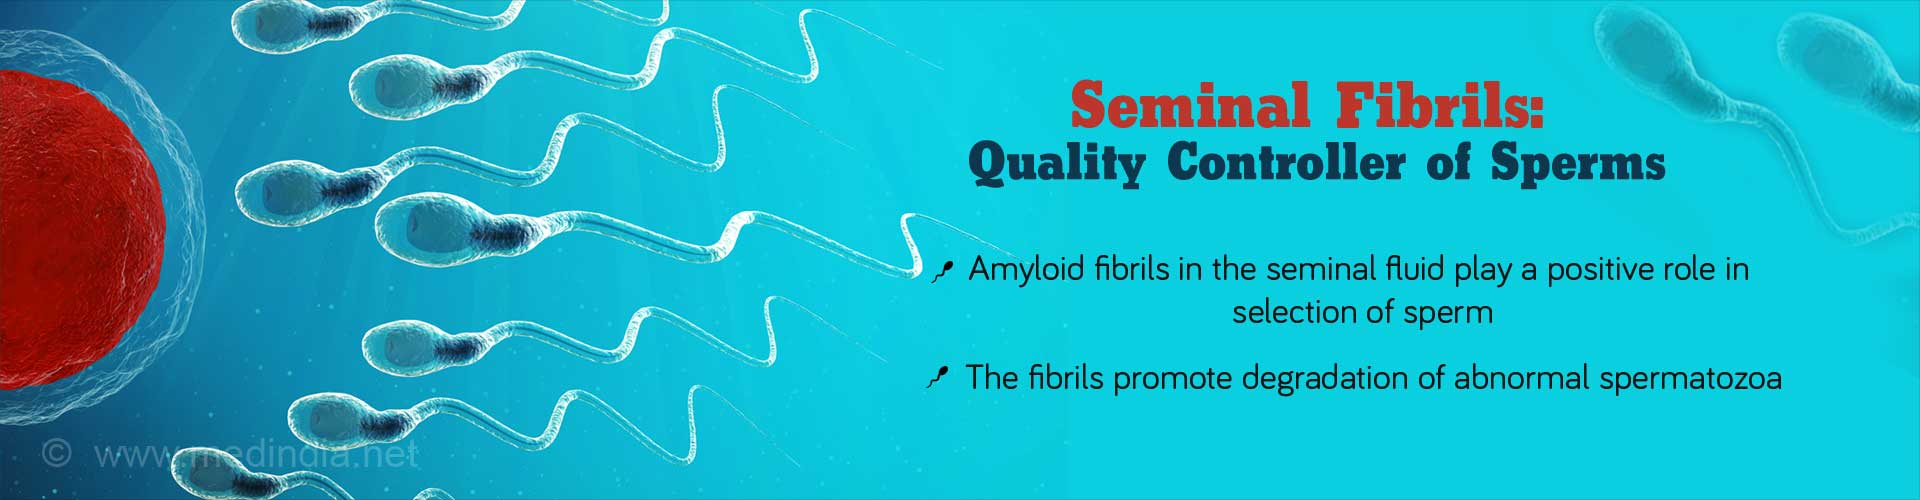 Seminal Fluid Fibrils Associated With Healthy Sperm Selection